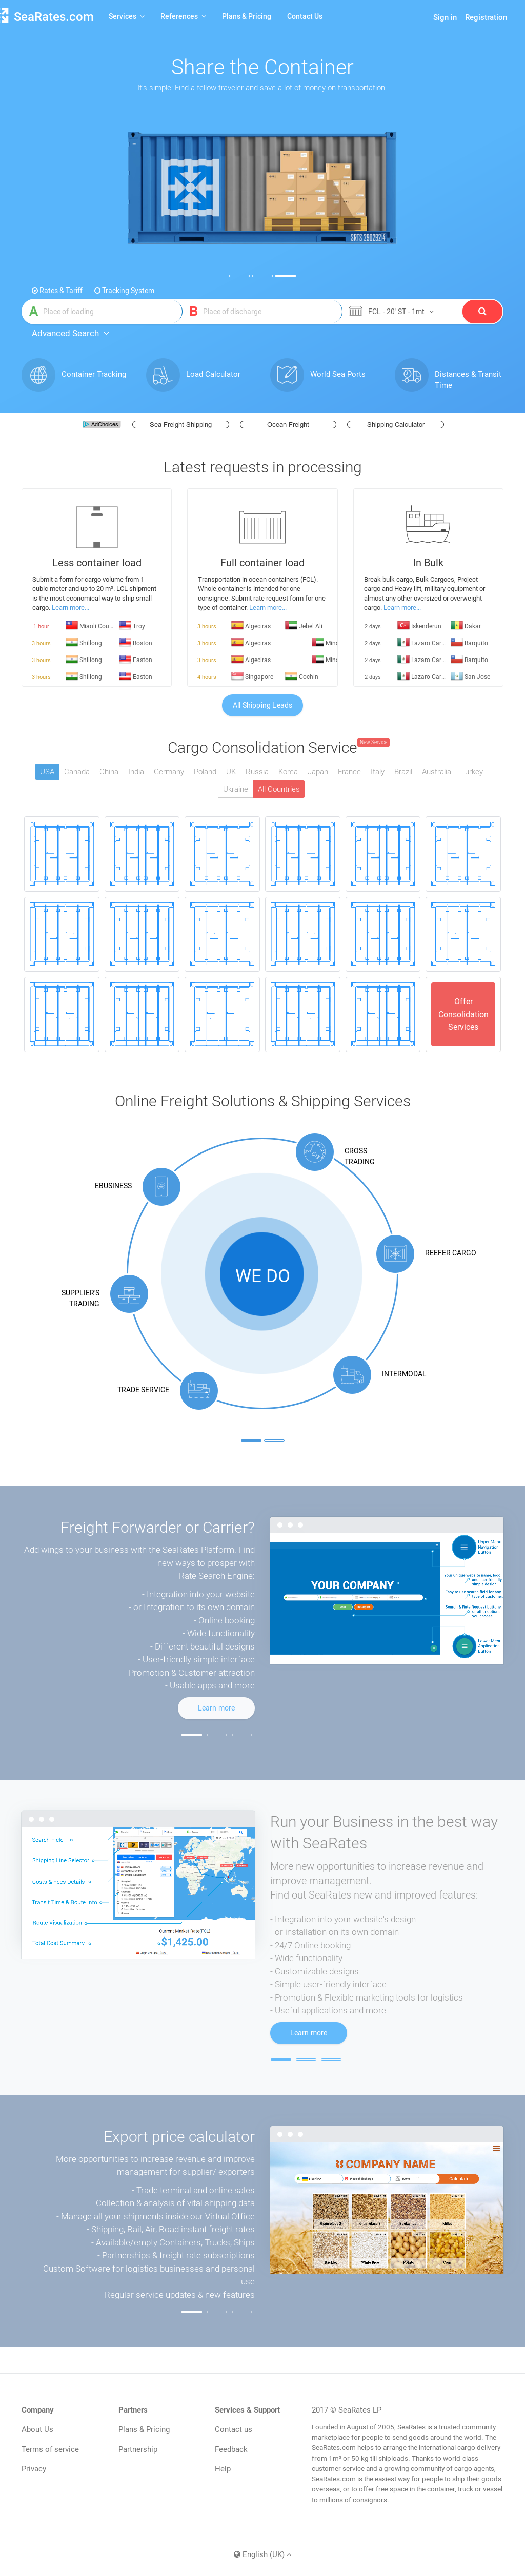 SeaRates Competitors, Revenue and Employees - Owler Company Profile